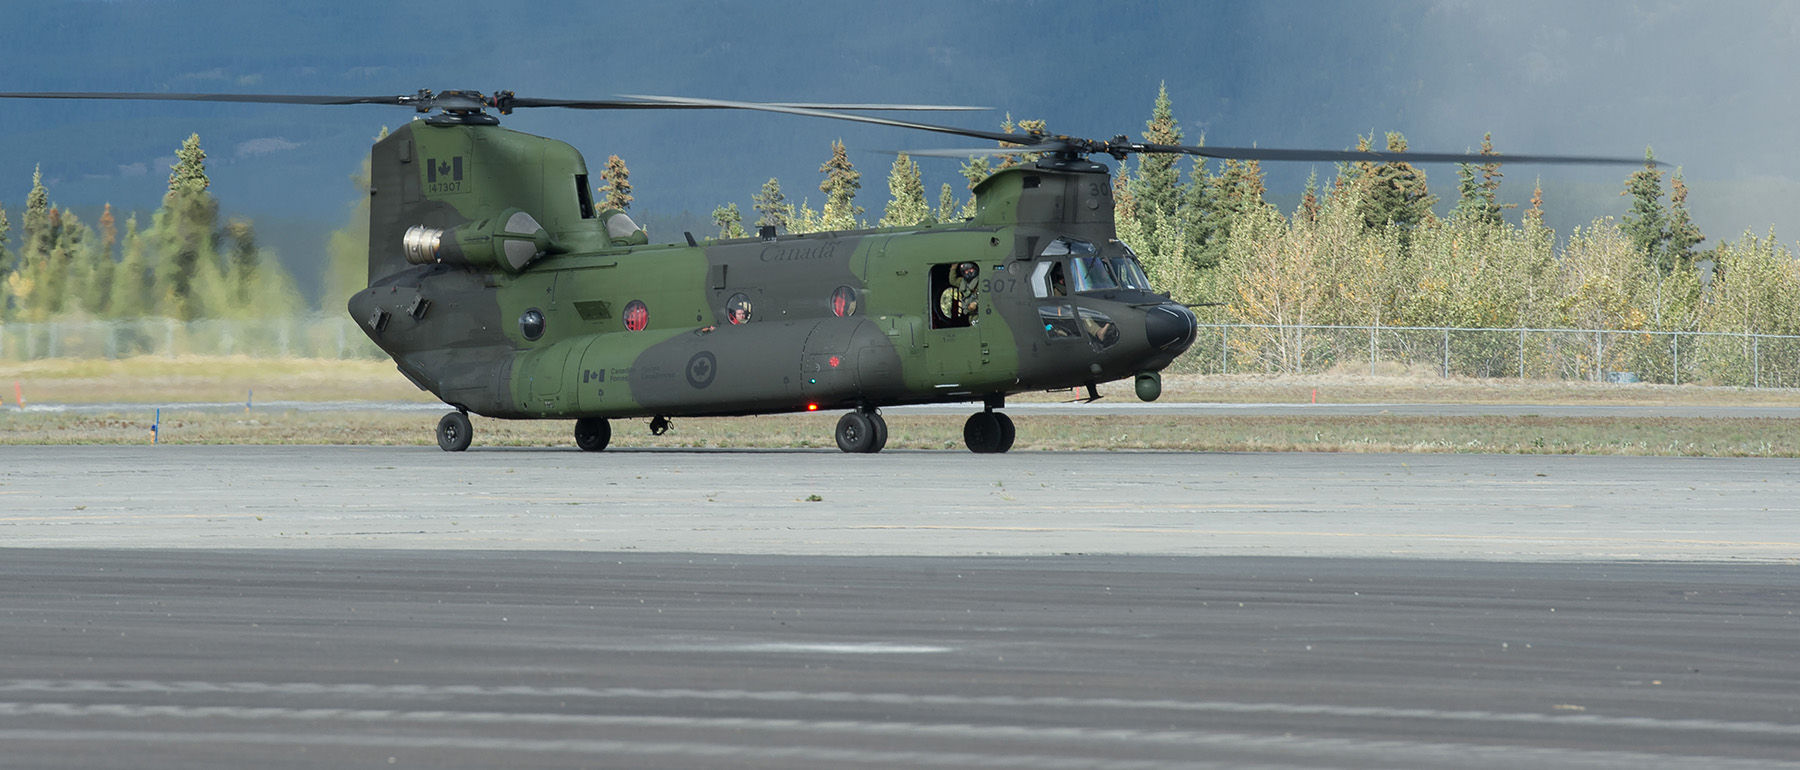 A Royal Canadian Air Force CH-147 Chinook helicopter from 450 Tactical Helicopter Squadron taxis on the runway at Erik Nielson Airport in Whitehorse, Yukon, on August 24, during Operation Nanook 2016. PHOTO: Corporal Chase Miller, SU11-2016-1061-051